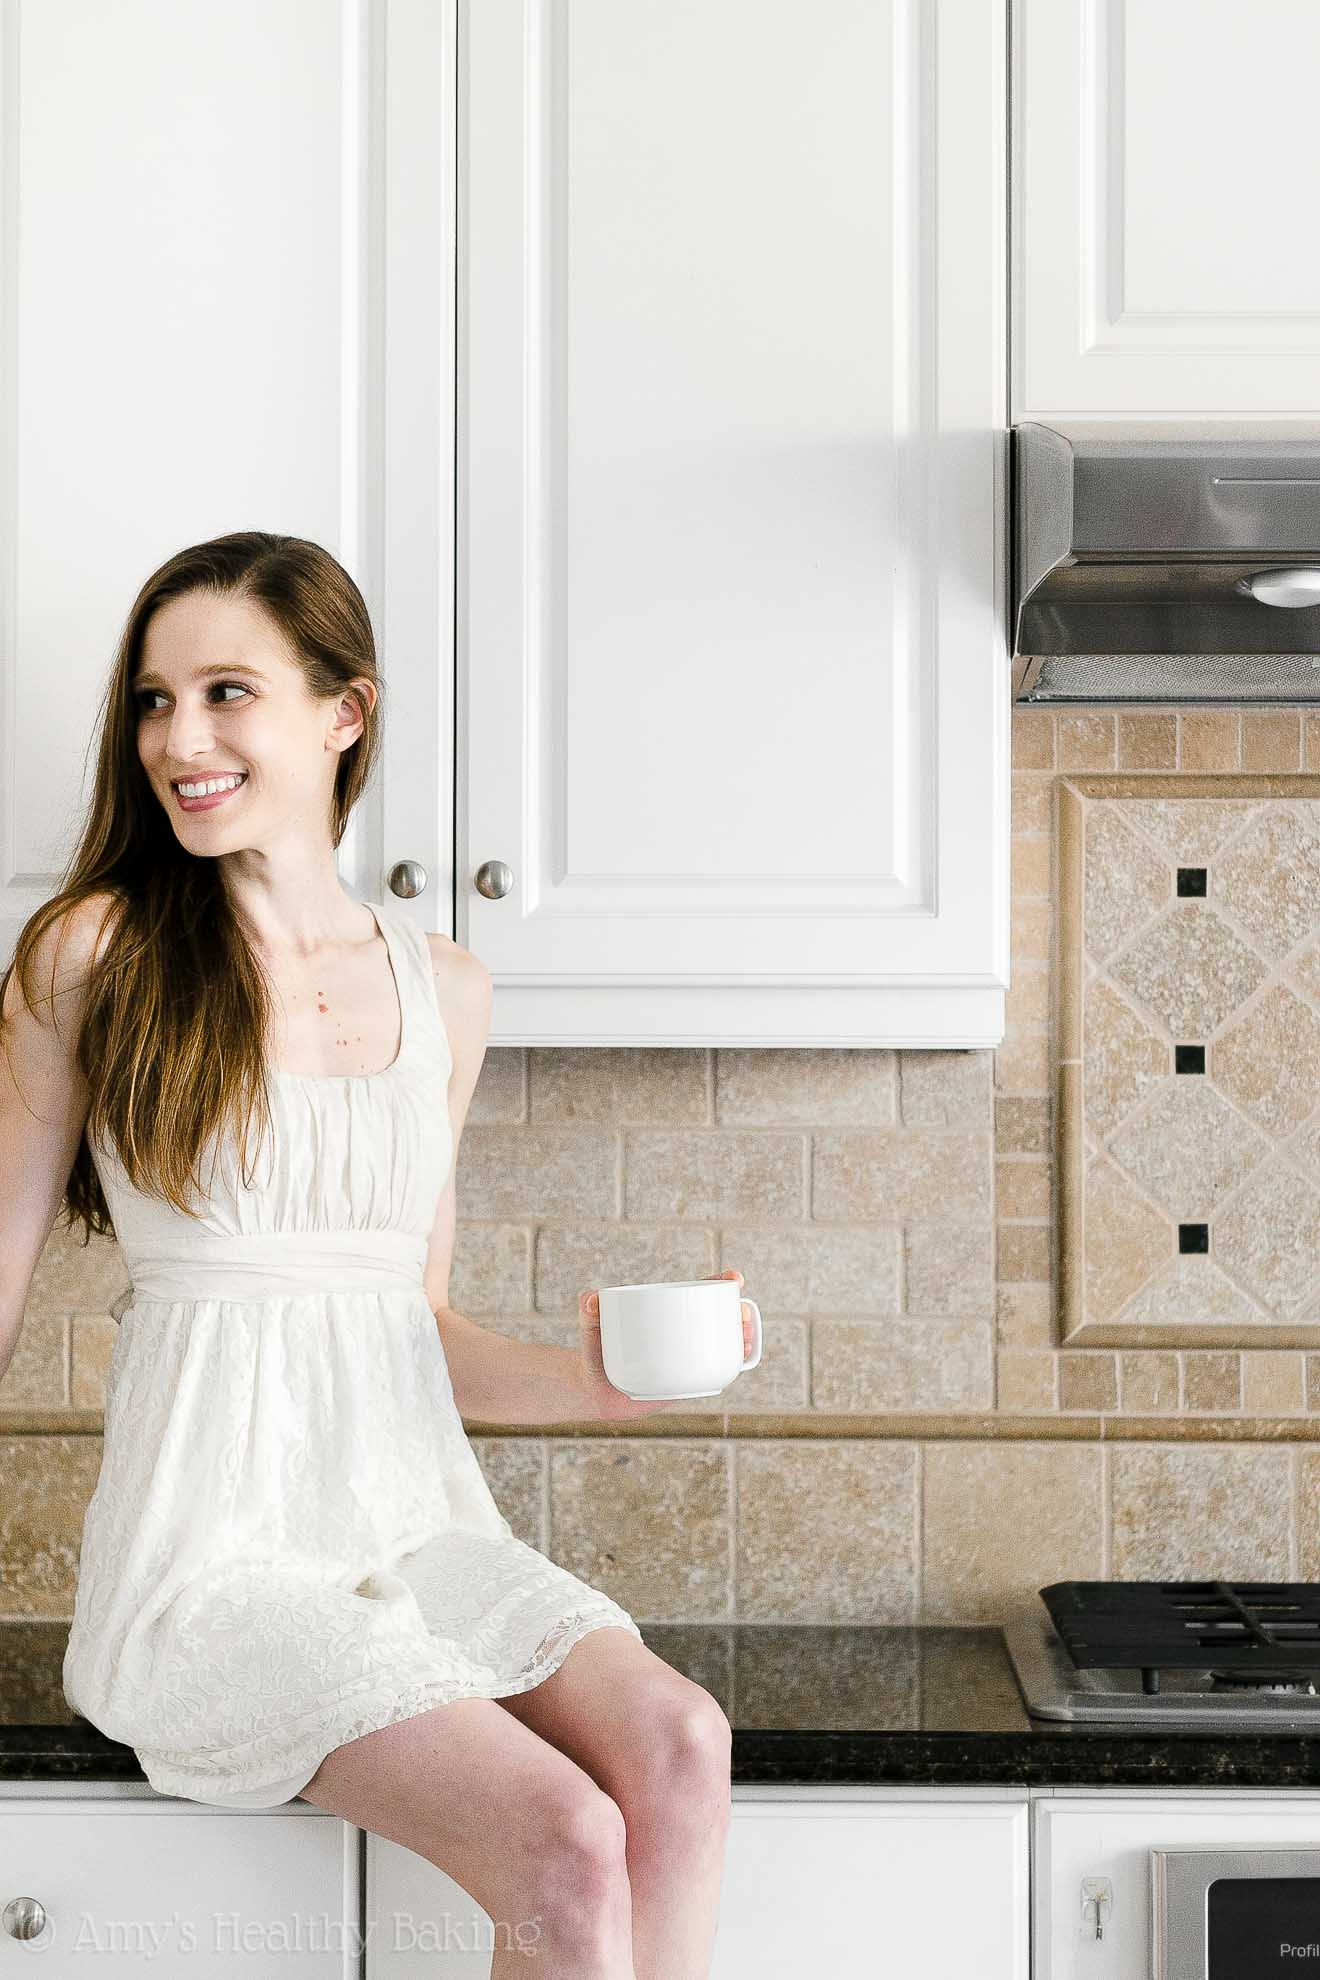 Amy Atherton, founder of Amy's Healthy Baking & intuition coach, sitting on a kitchen countertop